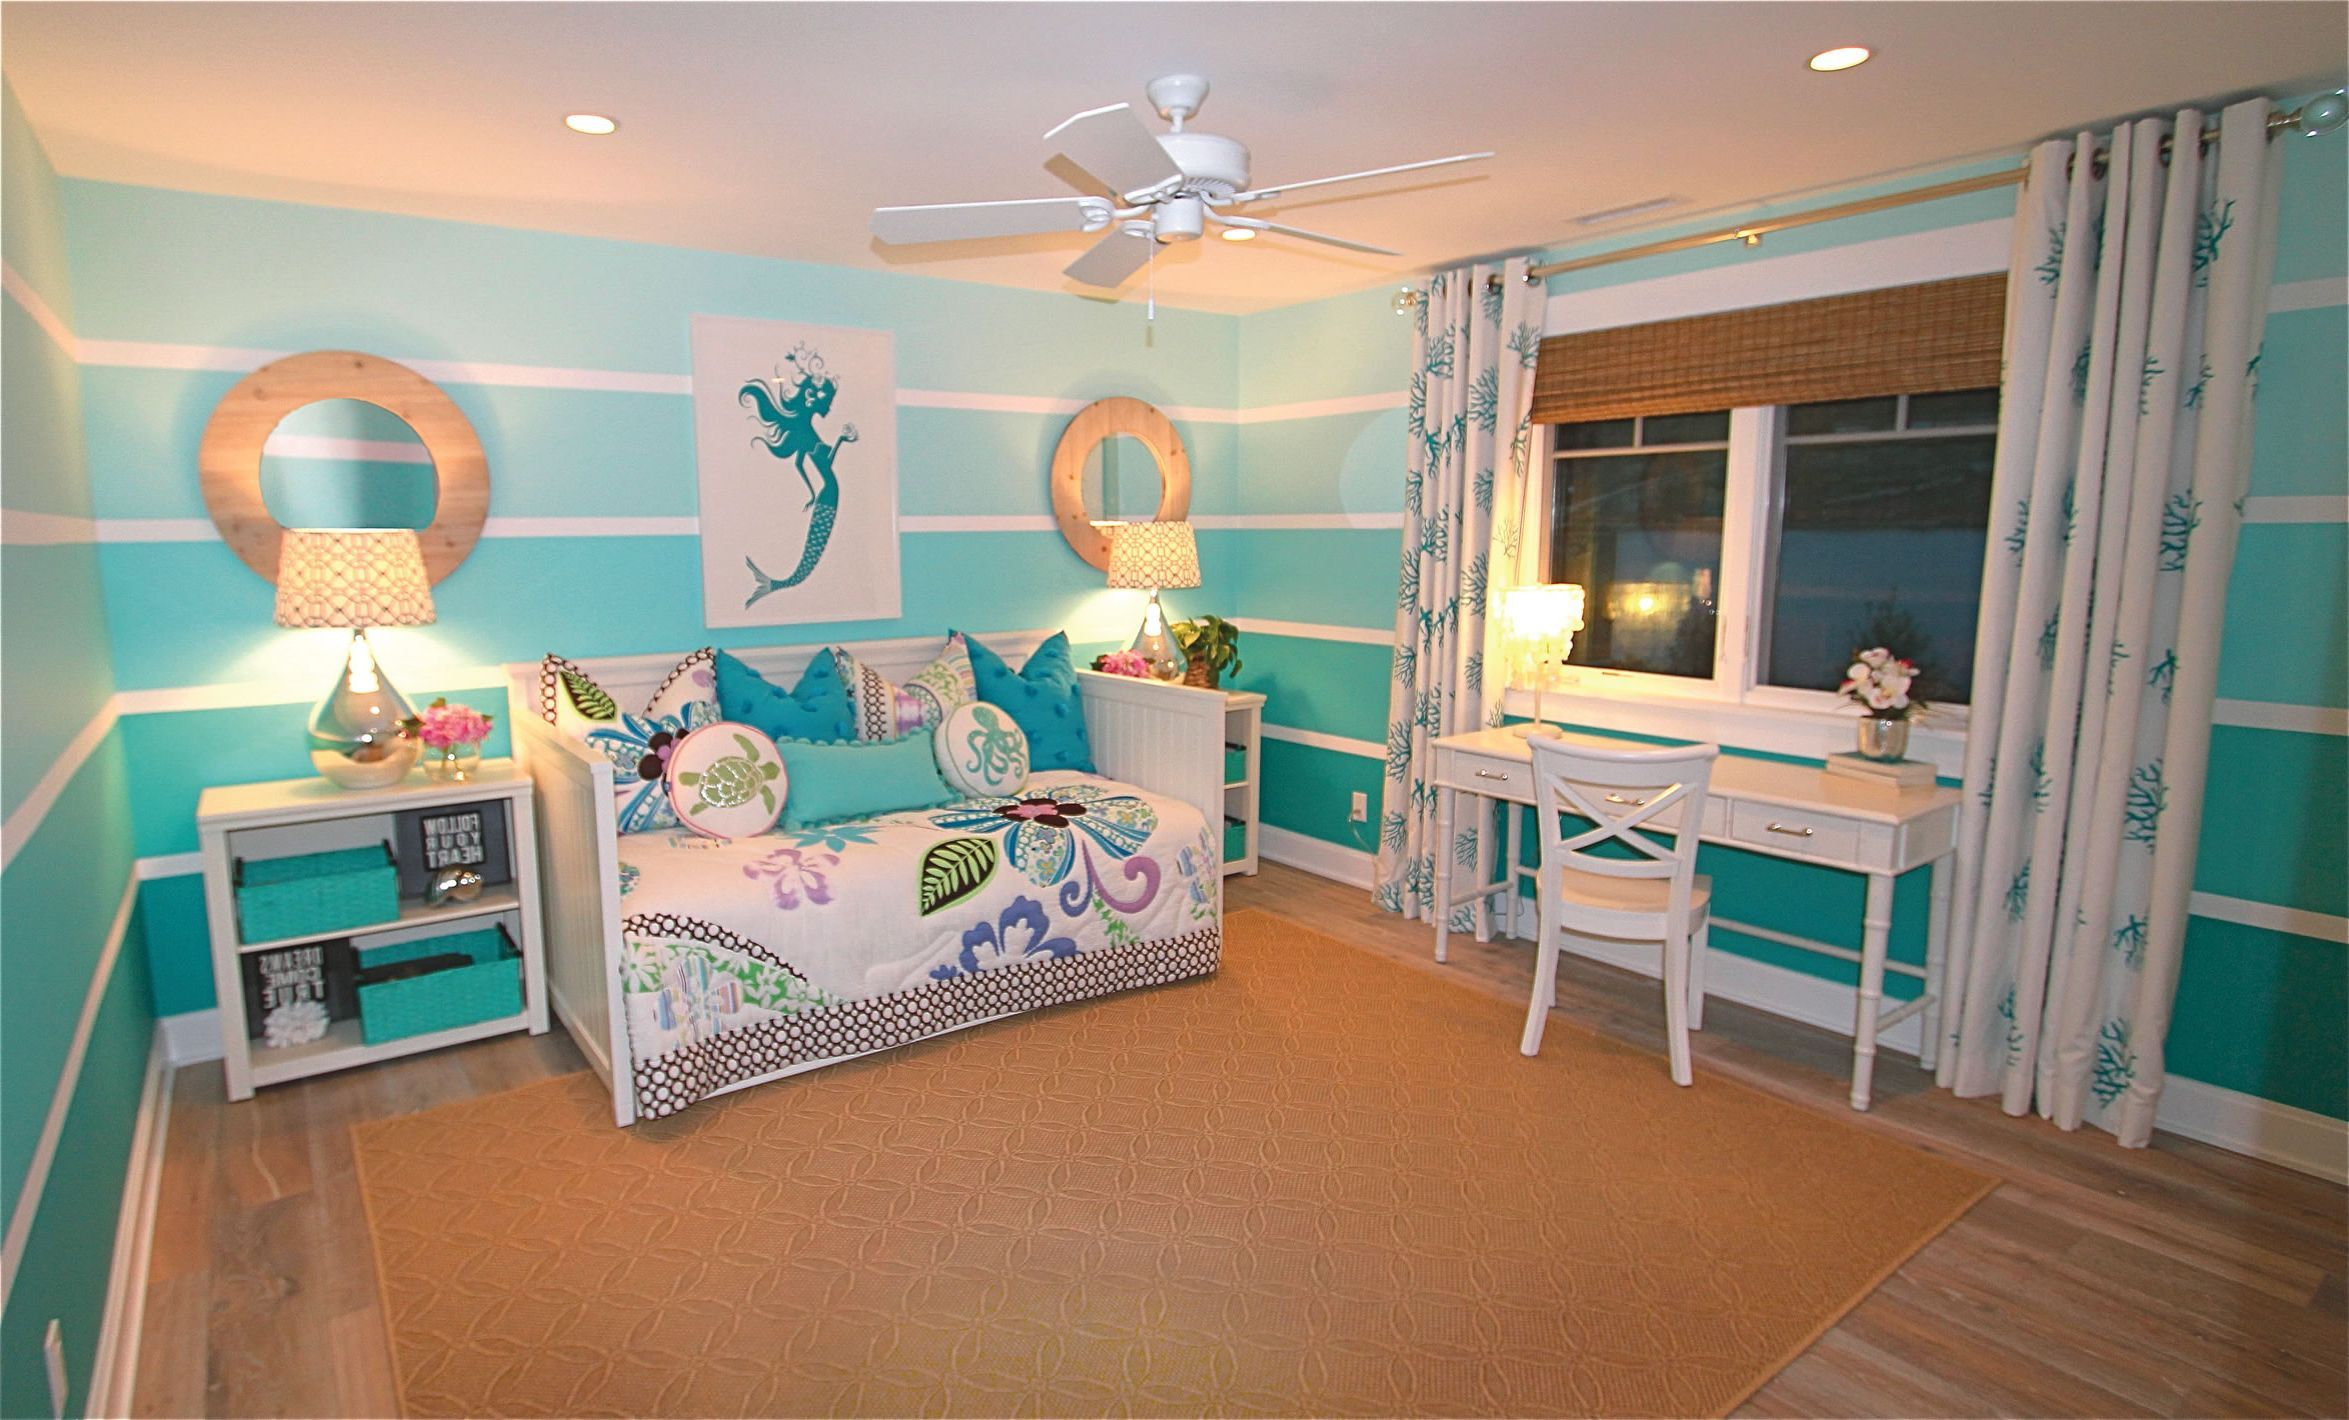 Bedroom Simple Decor Kids Beds With Storage Bunk For Teenagers